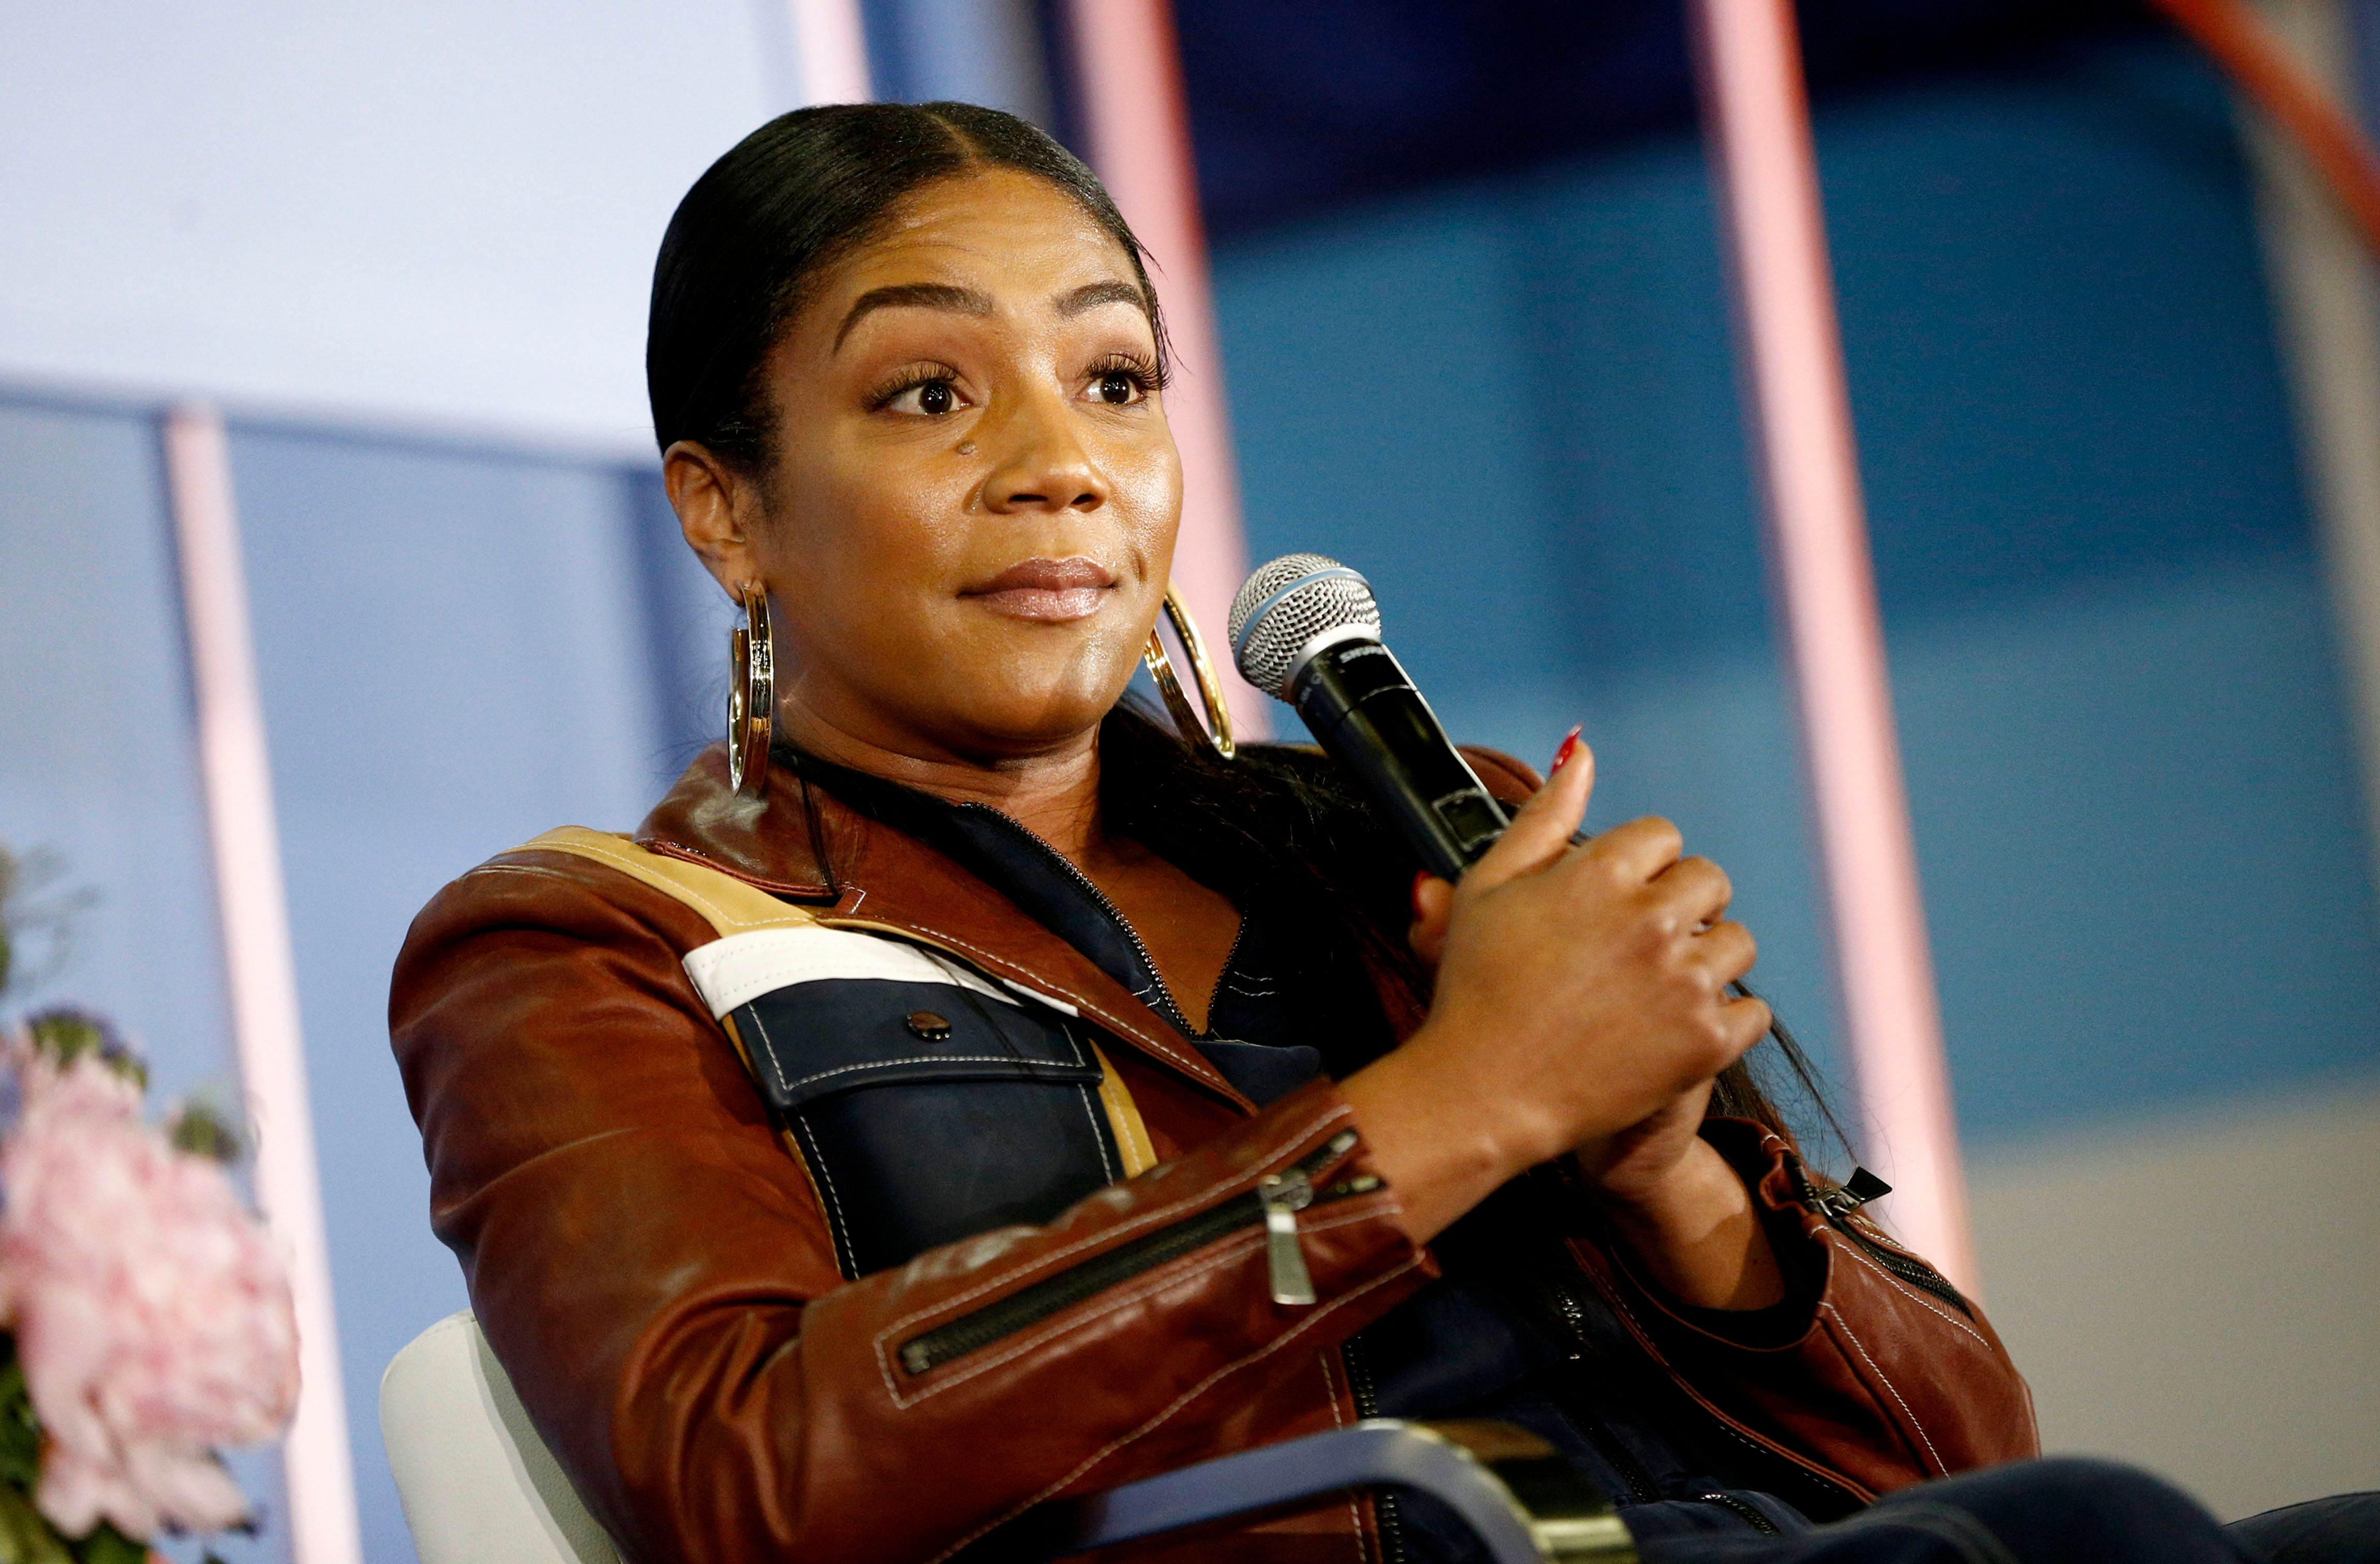 NEW YORK, NY - JUNE 10:  Tiffany Haddish speaks onstage during the 'The Last Laugh' panel day 2 of POPSUGAR Play/Ground on June 10, 2018 in New York City.  (Photo by Brian Ach/Getty Images for POPSUGAR Play/Ground)